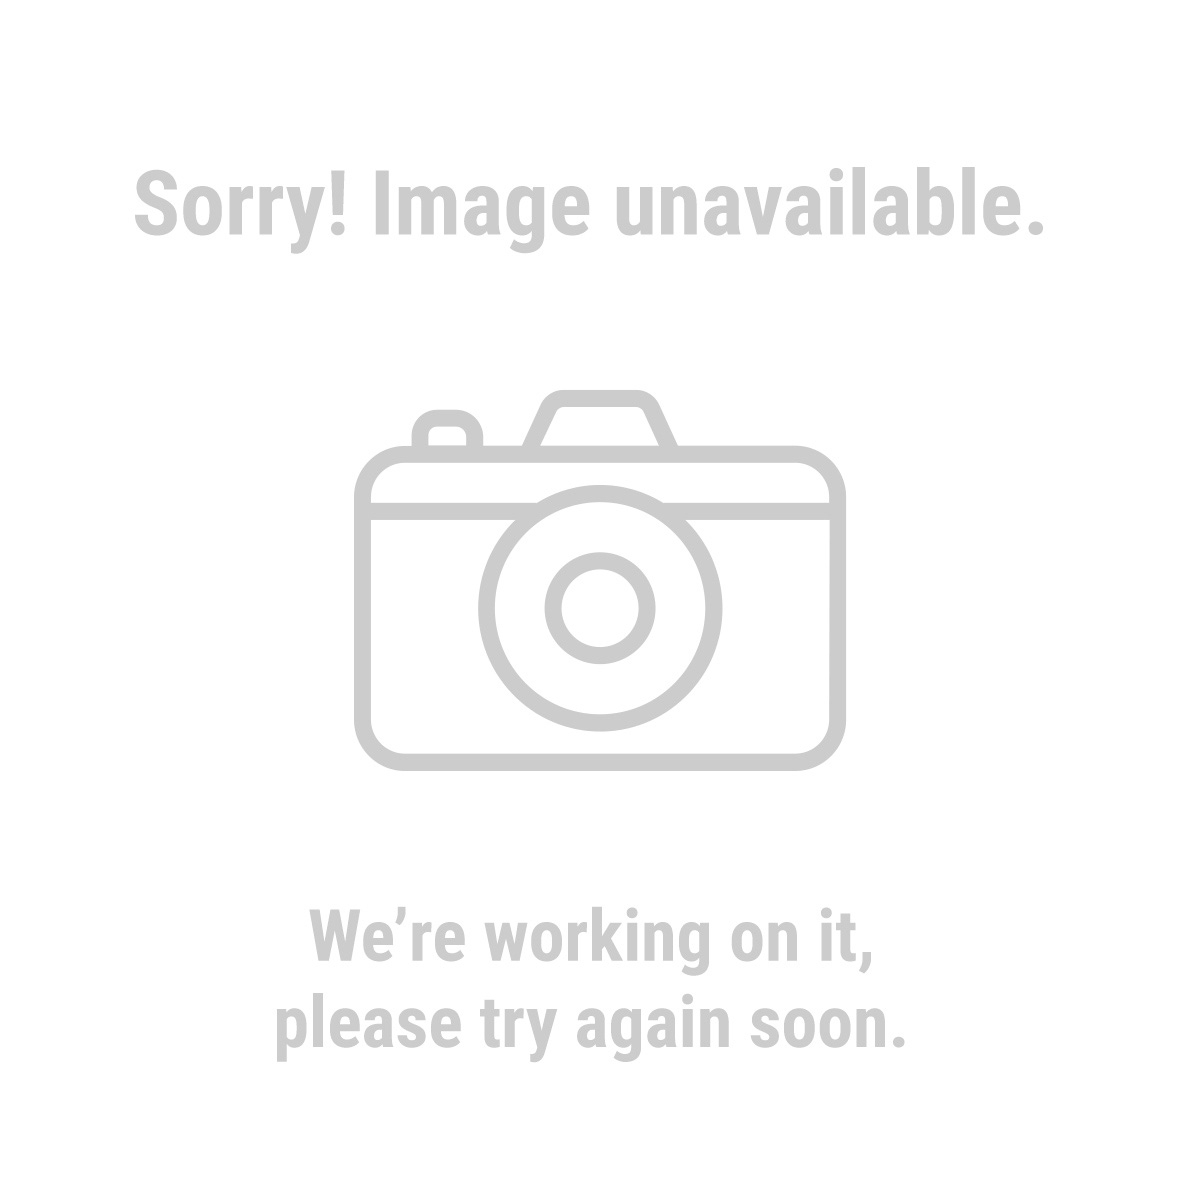 Bauer 63433 7.3 Amp Heavy Duty 1 in. SDS Variable Speed Rotary Hammer